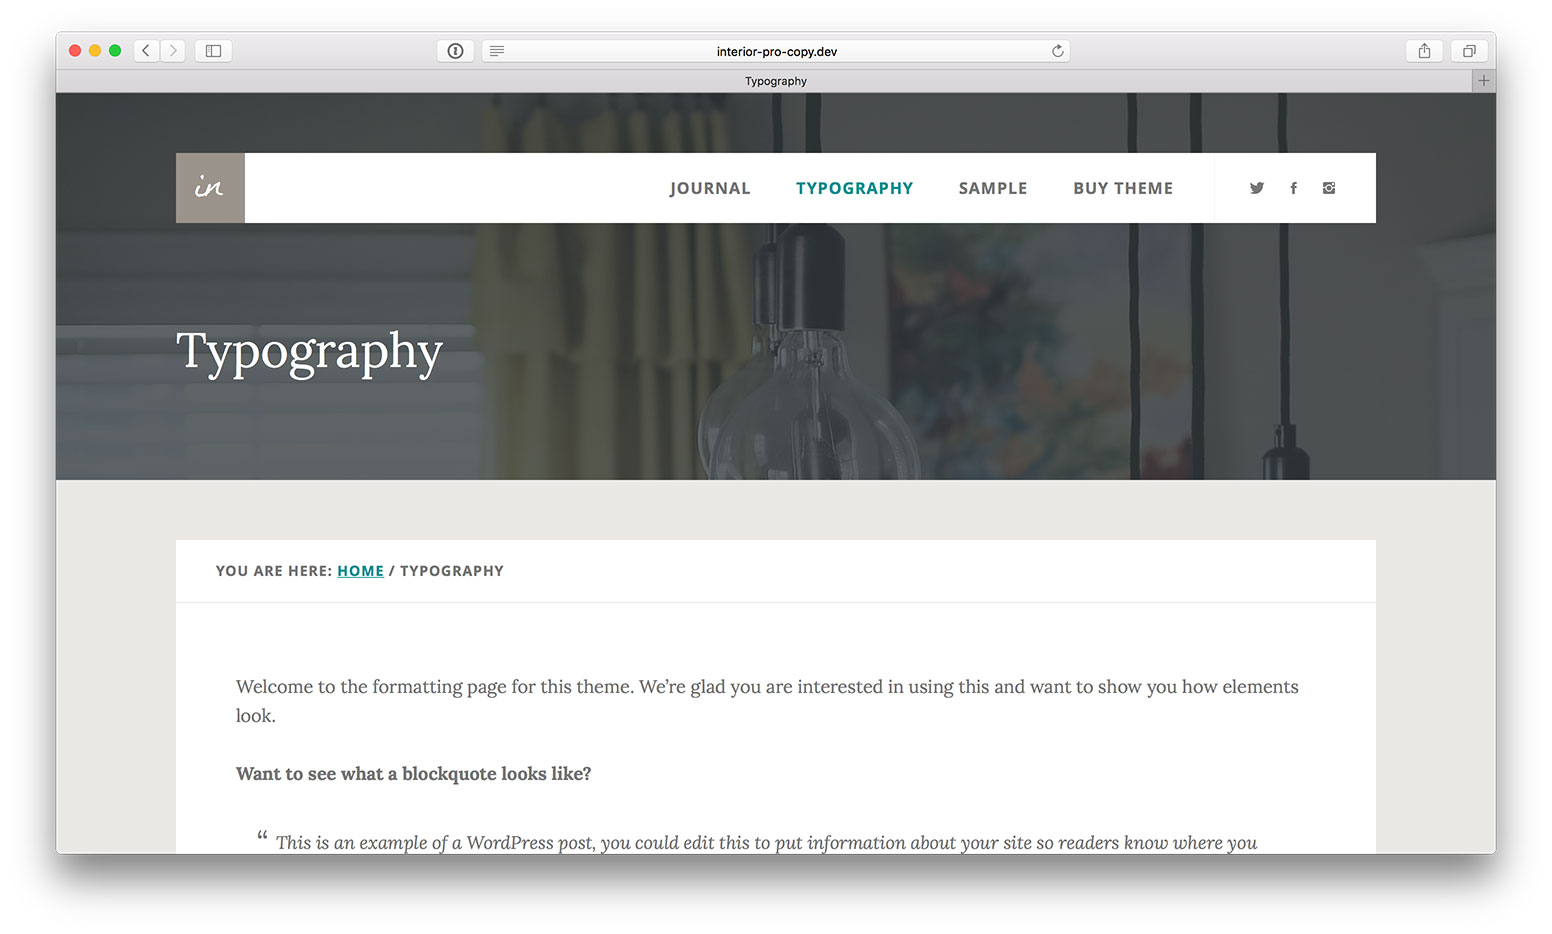 interior-pro-Page-hero-image-featured-image